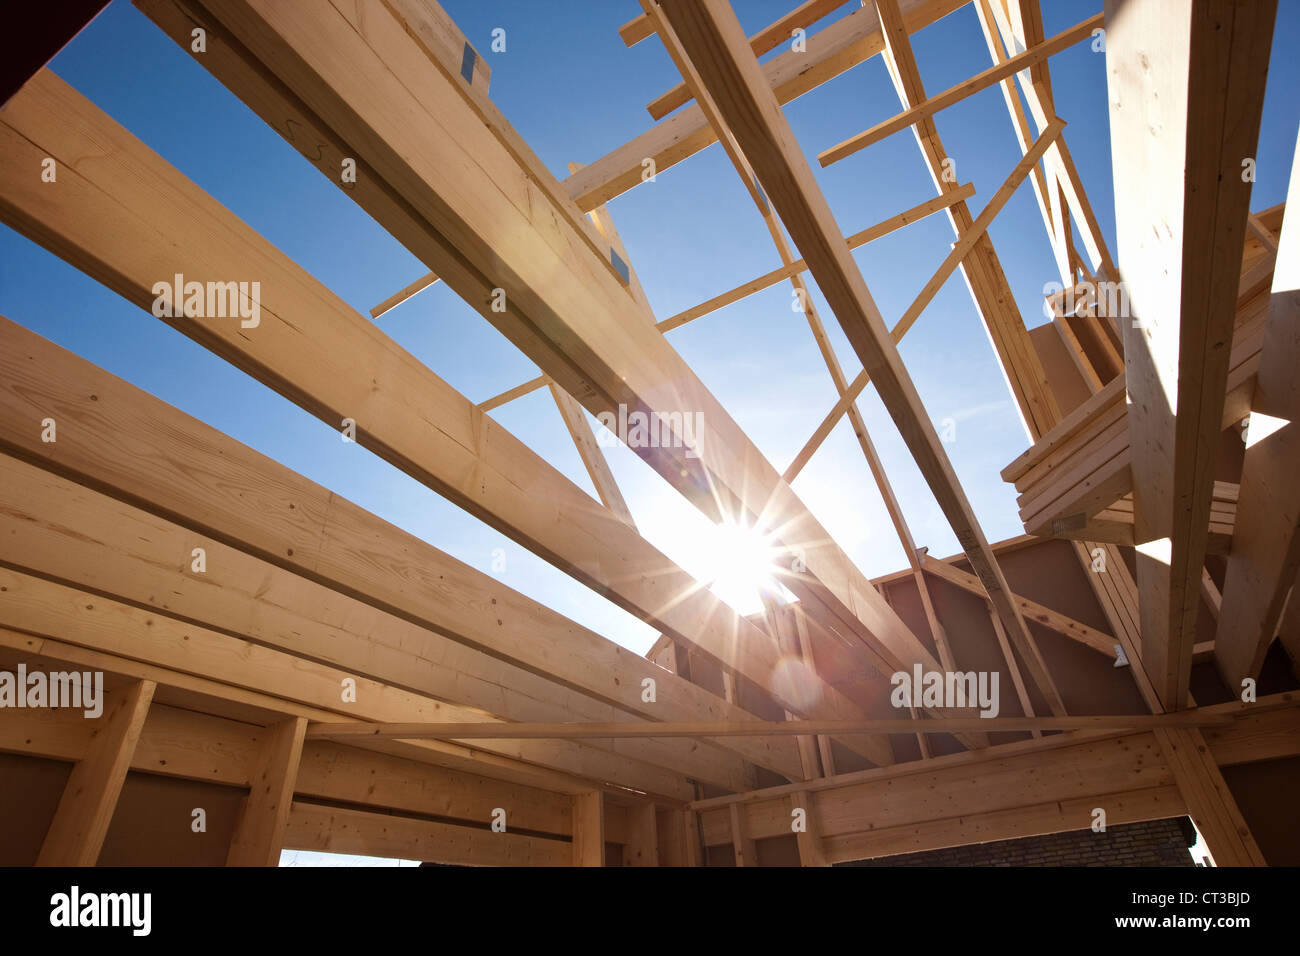 Interior of building under construction - Stock Image